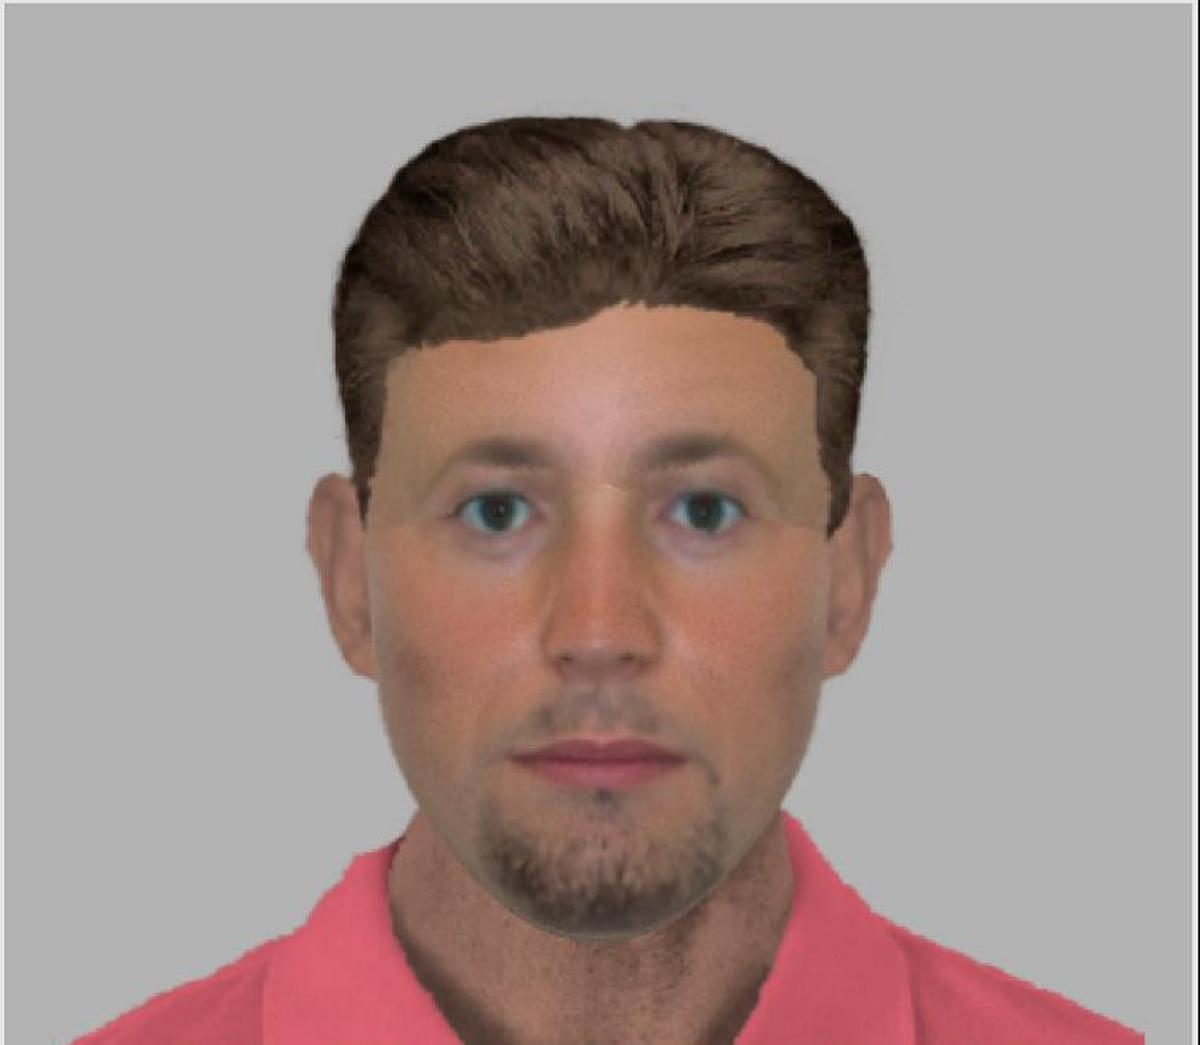 Efit issued in trace for man involved in brawl